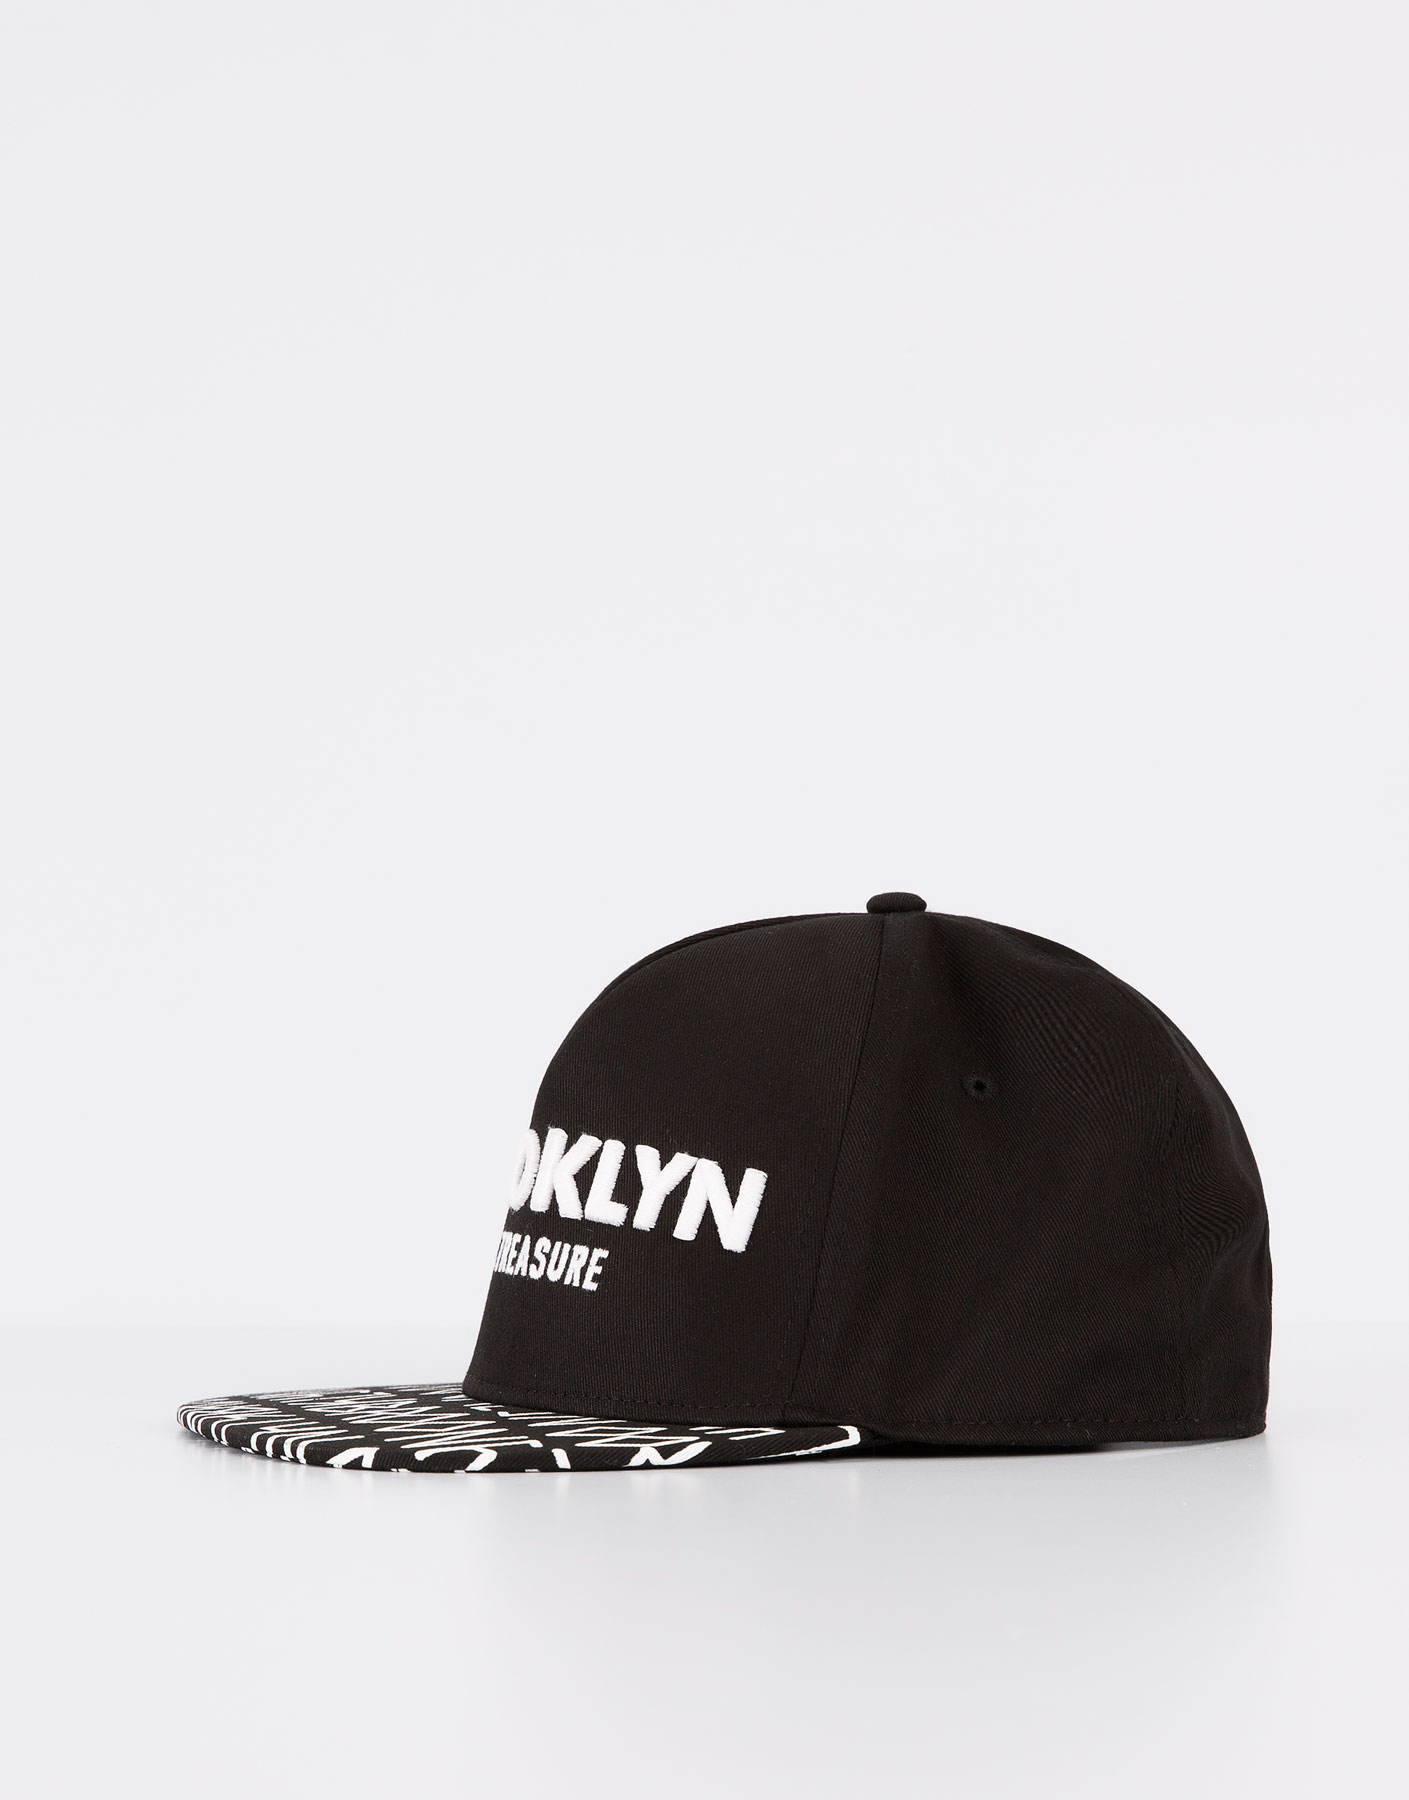 Gorra bordado brooklyn